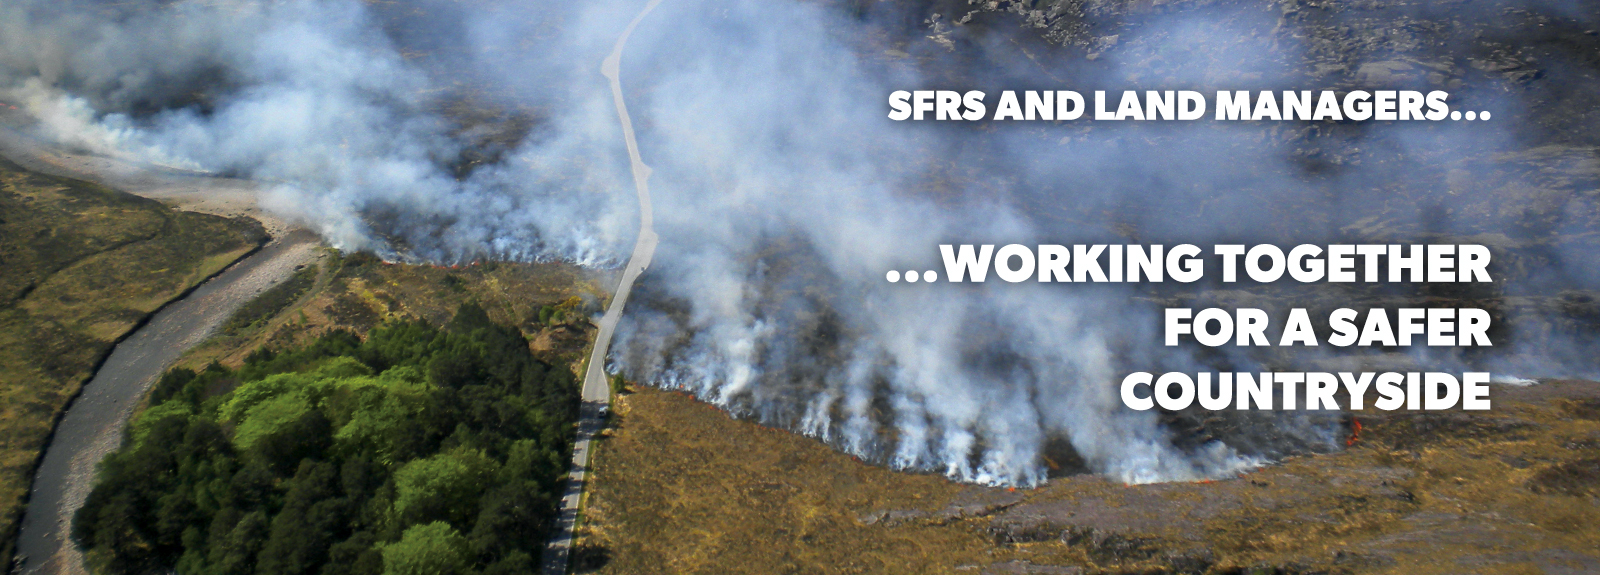 Update - wildfire - Stonehaven